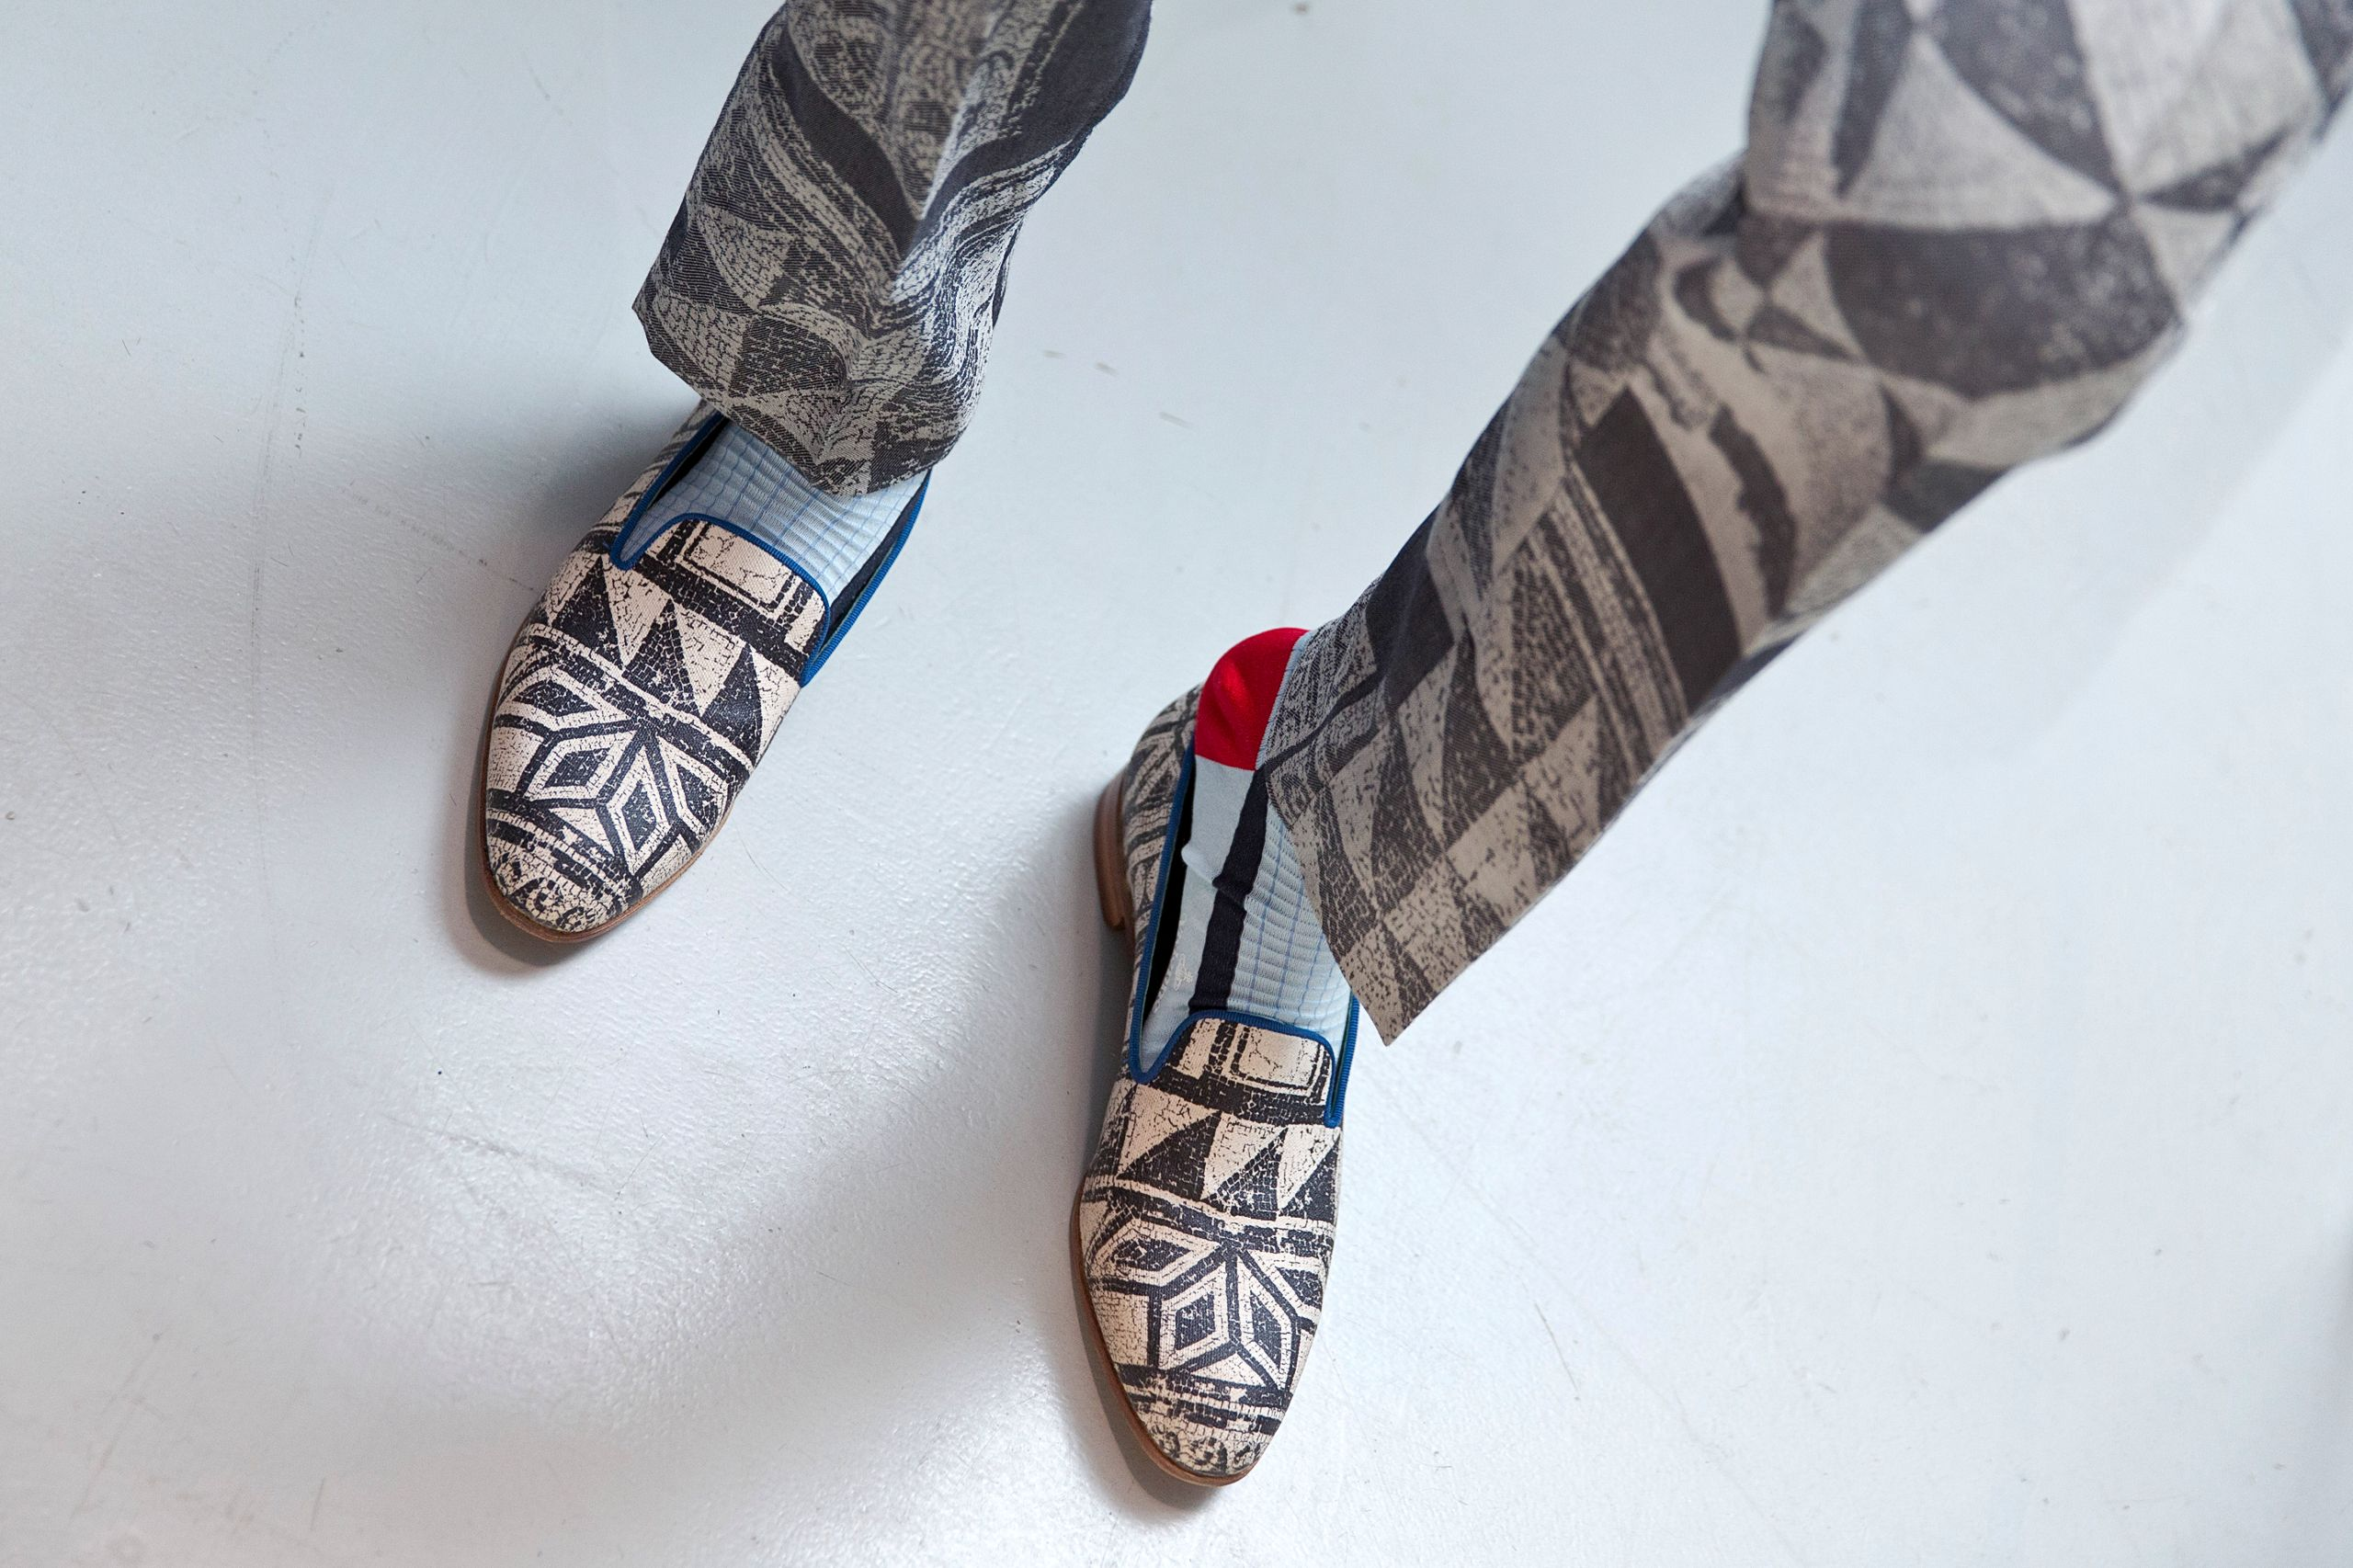 Mosaic loafers from AW14/15 MAN collection.